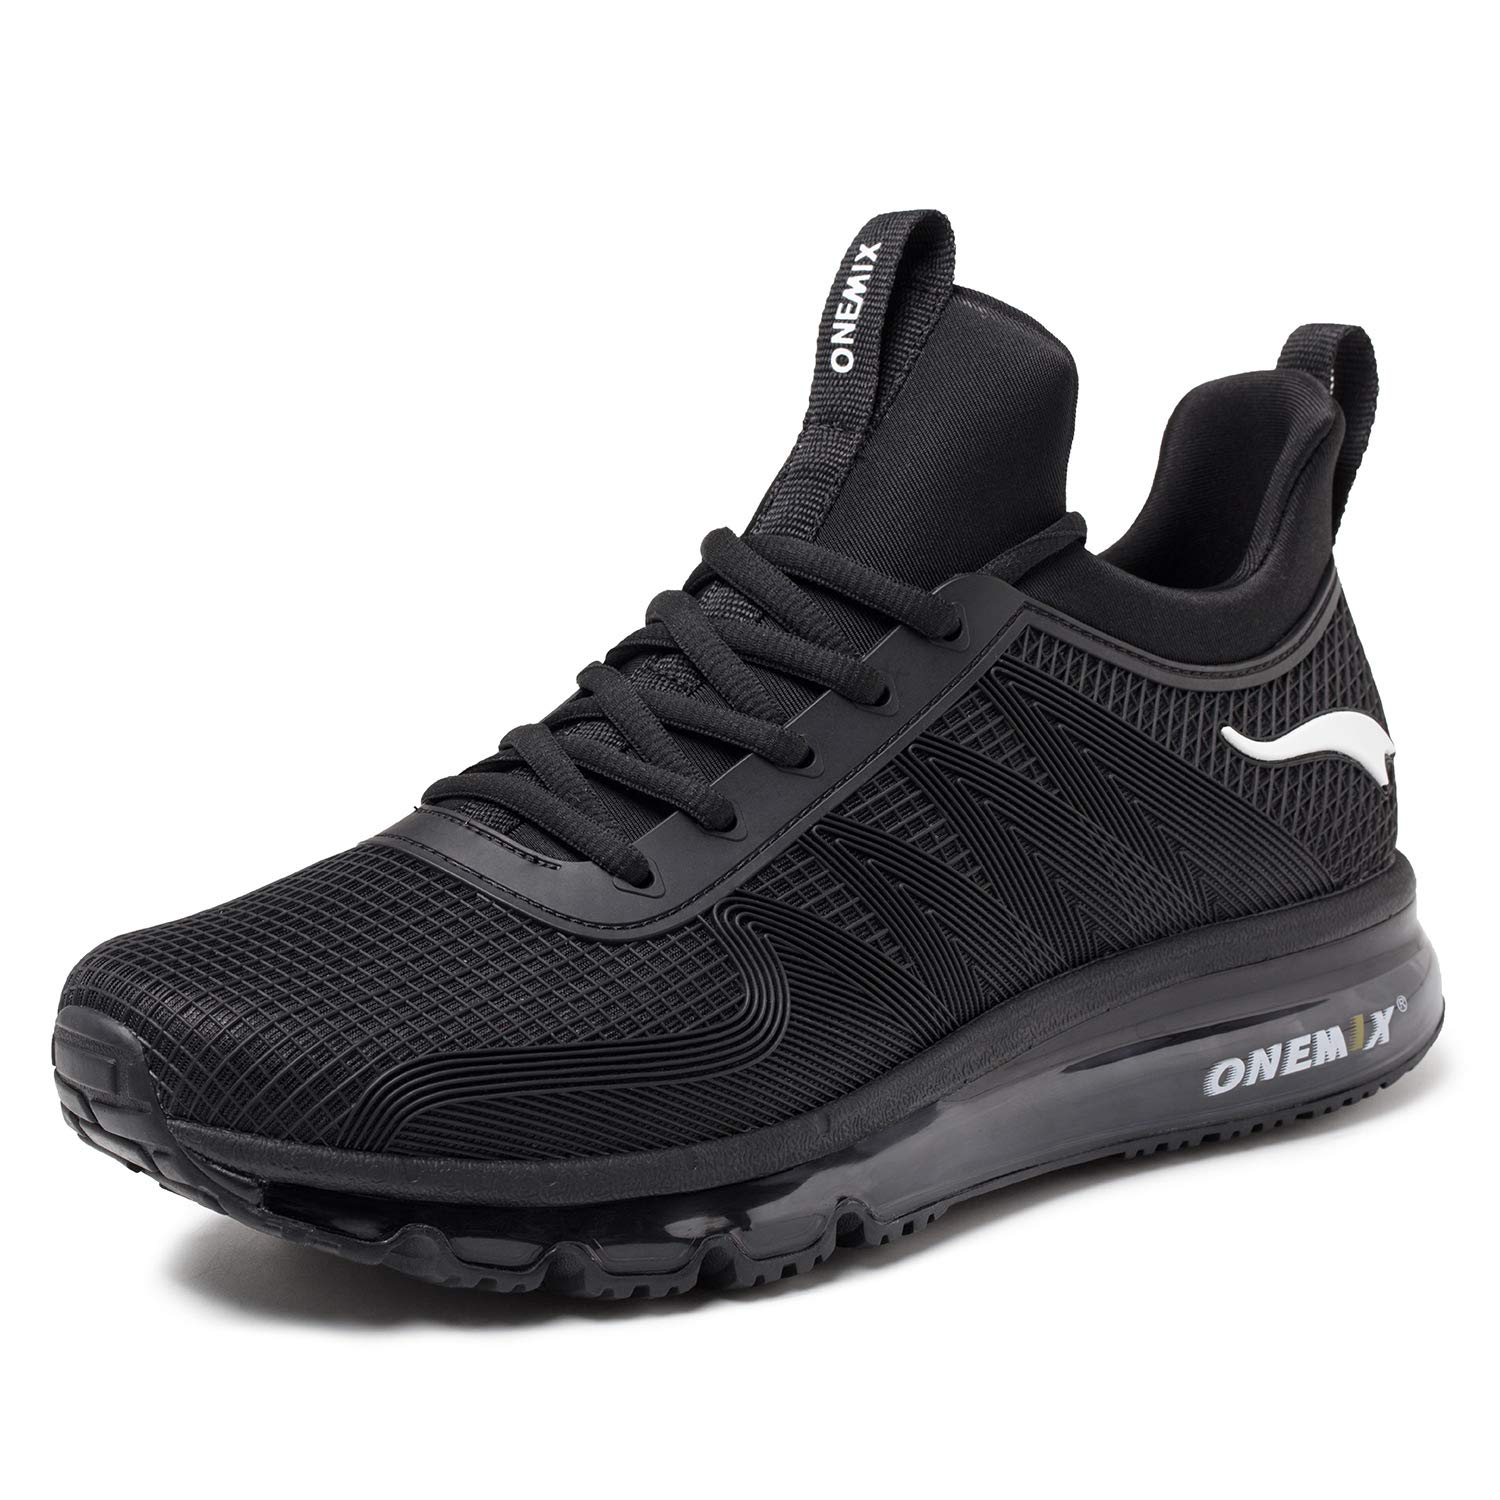 ONEMIX Mens Air Cushion Sports Running Shoes Lightweight Breathable Casual Sneakers 1191 Black 46